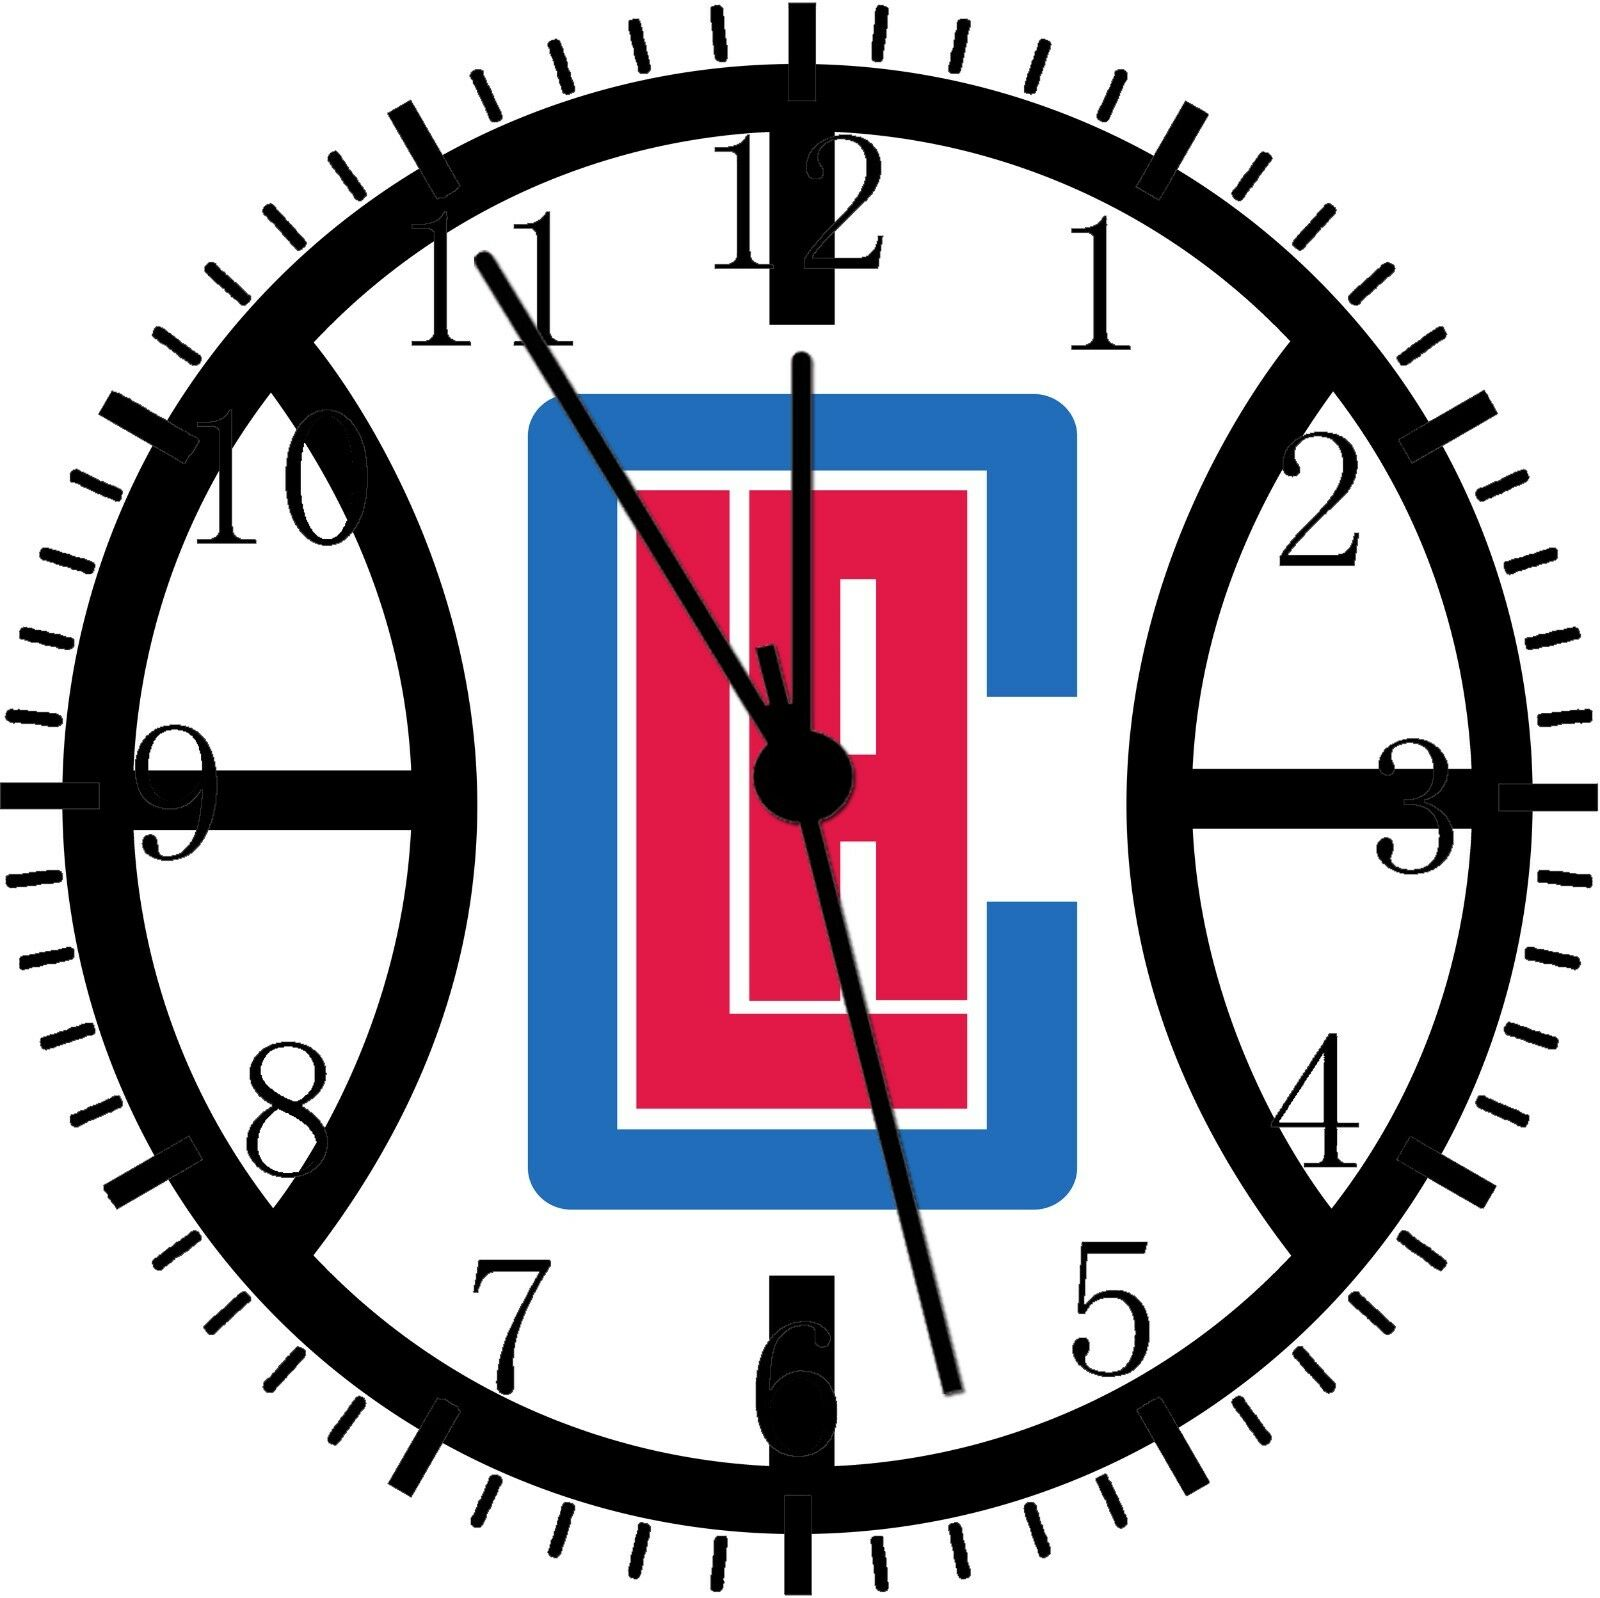 Los Angeles Clippers Frameless Borderless Wall Clock For Gifts or Decor E260